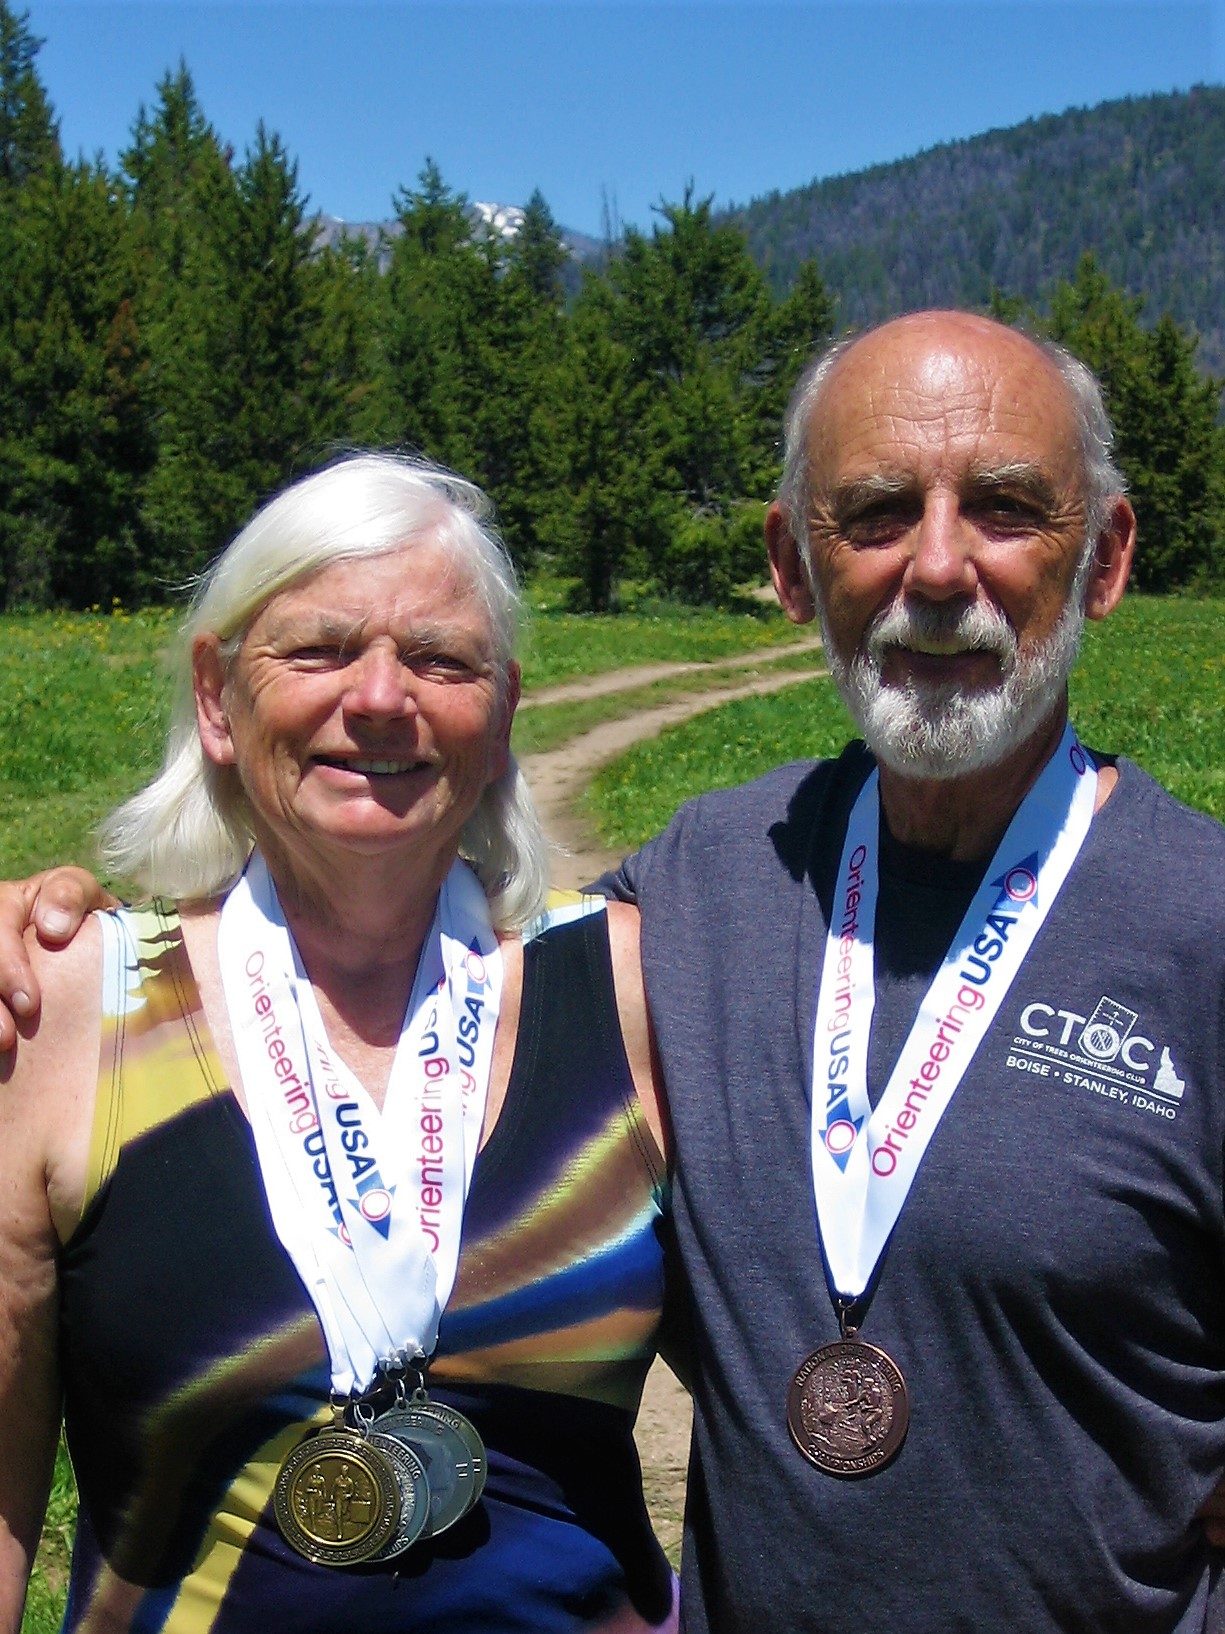 Jill and Rick McBee with an impressive hardware collection! National Championships, Idaho, 2017.